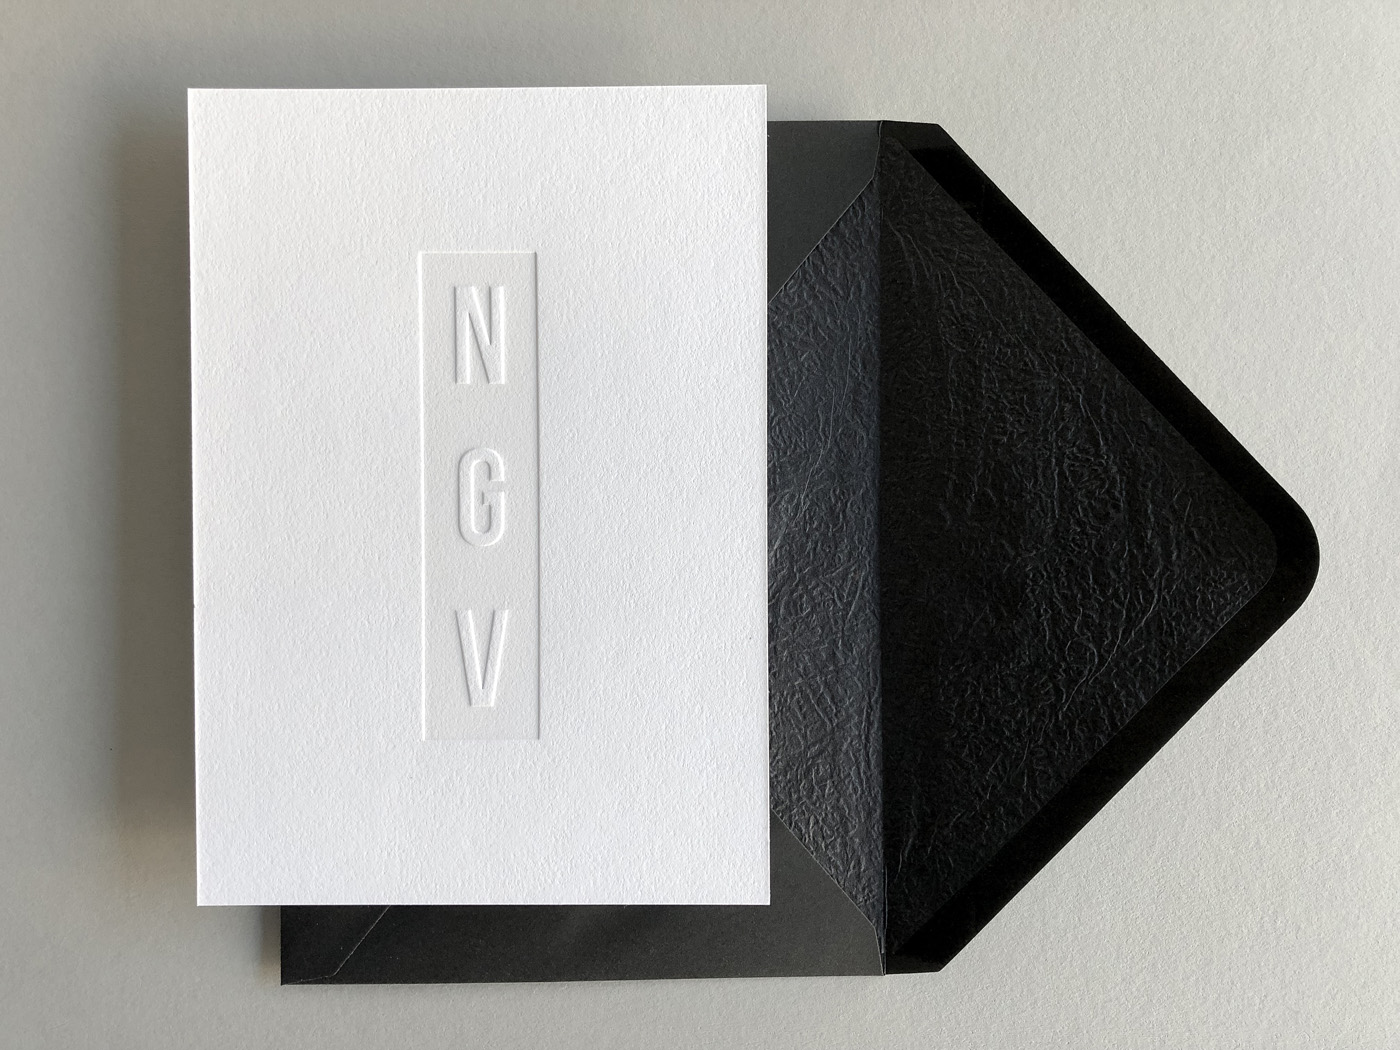 Premium letterpress invitations for National Gallery of Victoria Gala on Savoy